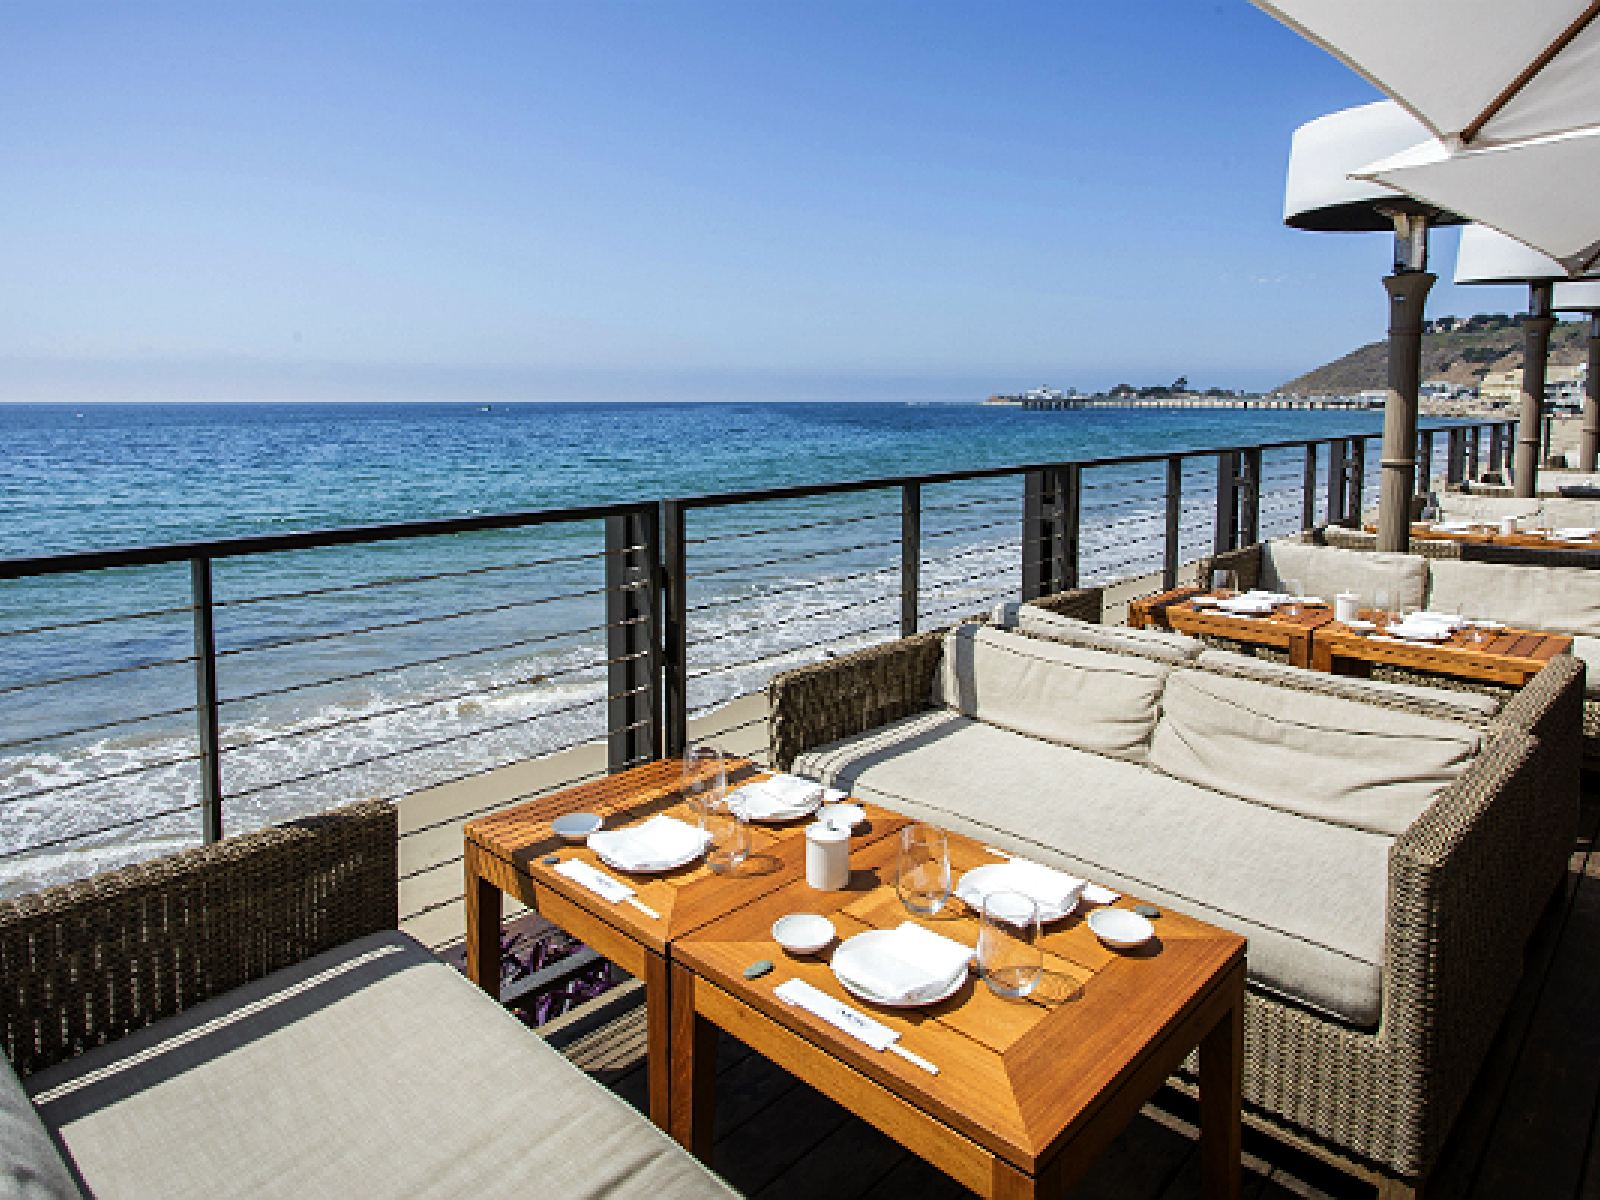 The Best Ocean View Restaurants On The Westside Of L A Discover Los Angeles